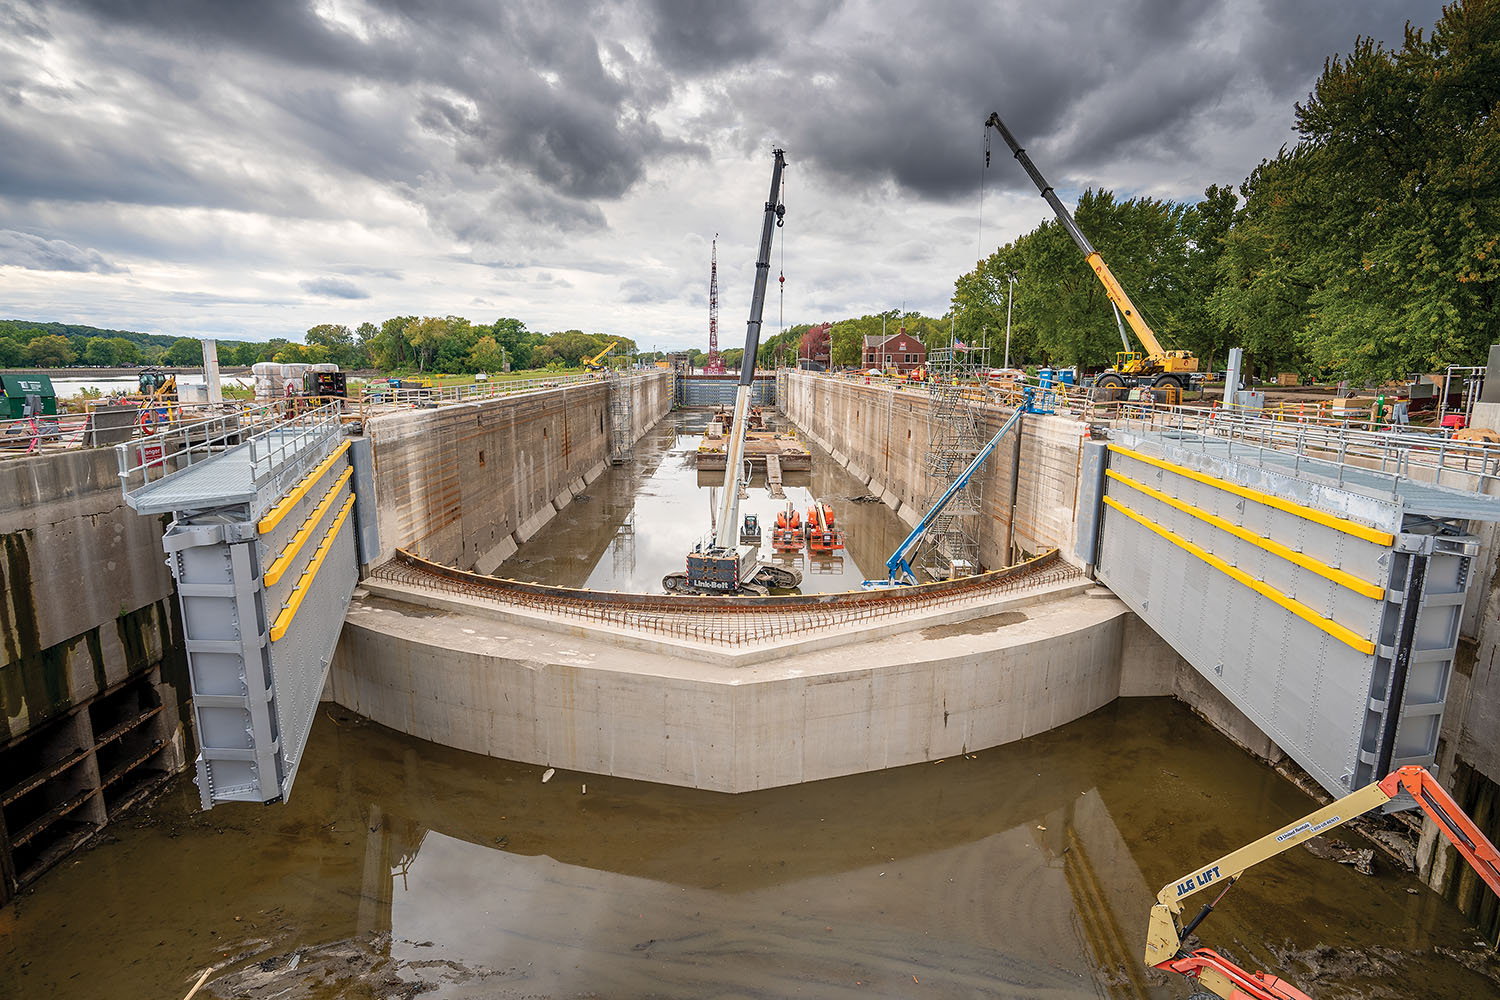 All four miter gates were replaced at Starved Rock Lock as part of the project. Both Starved Rock and Marseilles locks reopened October 29, meaning all five Illinois Waterway locks where extended closures took place since July are now back open. (Photo courtesy of Alberici Constructors)